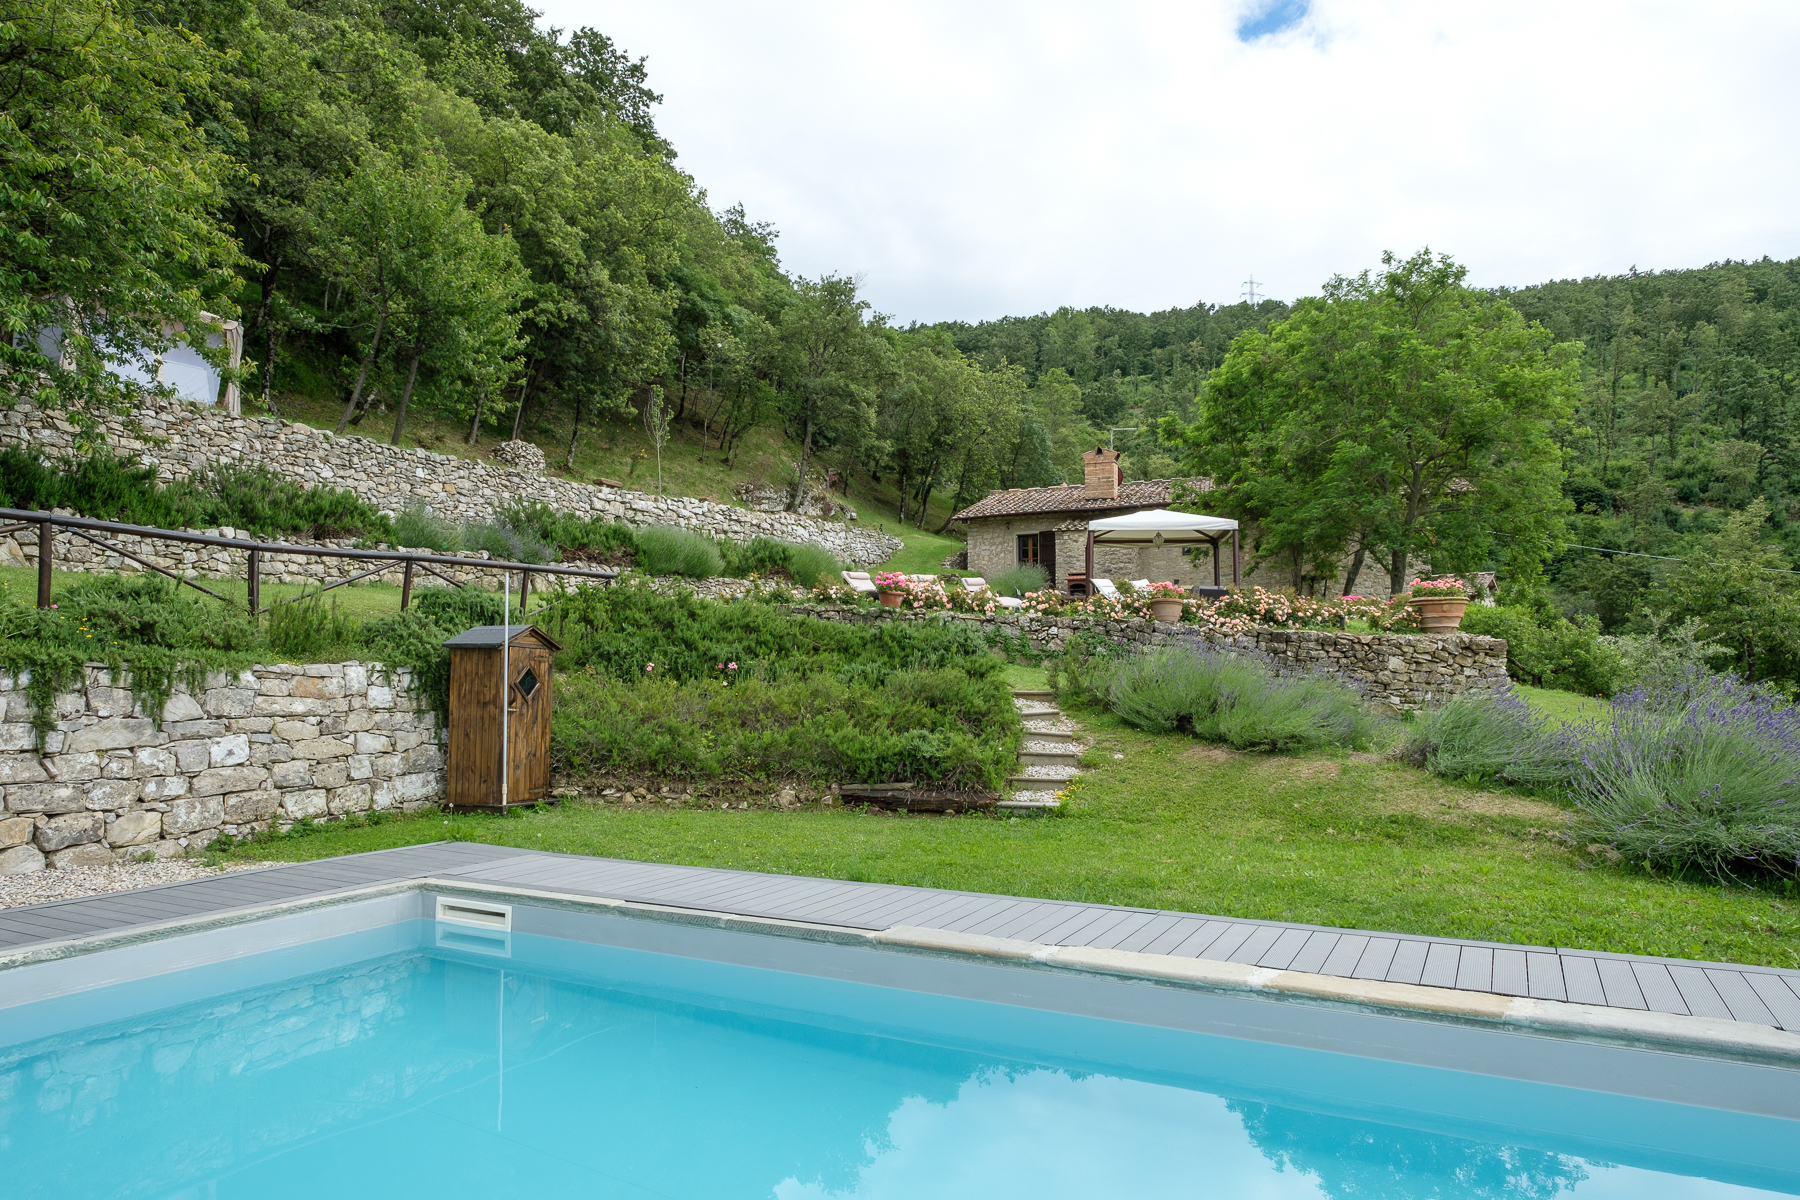 Additional photo for property listing at Traditional country house near Florence Via di Vara e Lonciano Sesto Fiorentino, Florence 50019 Italy